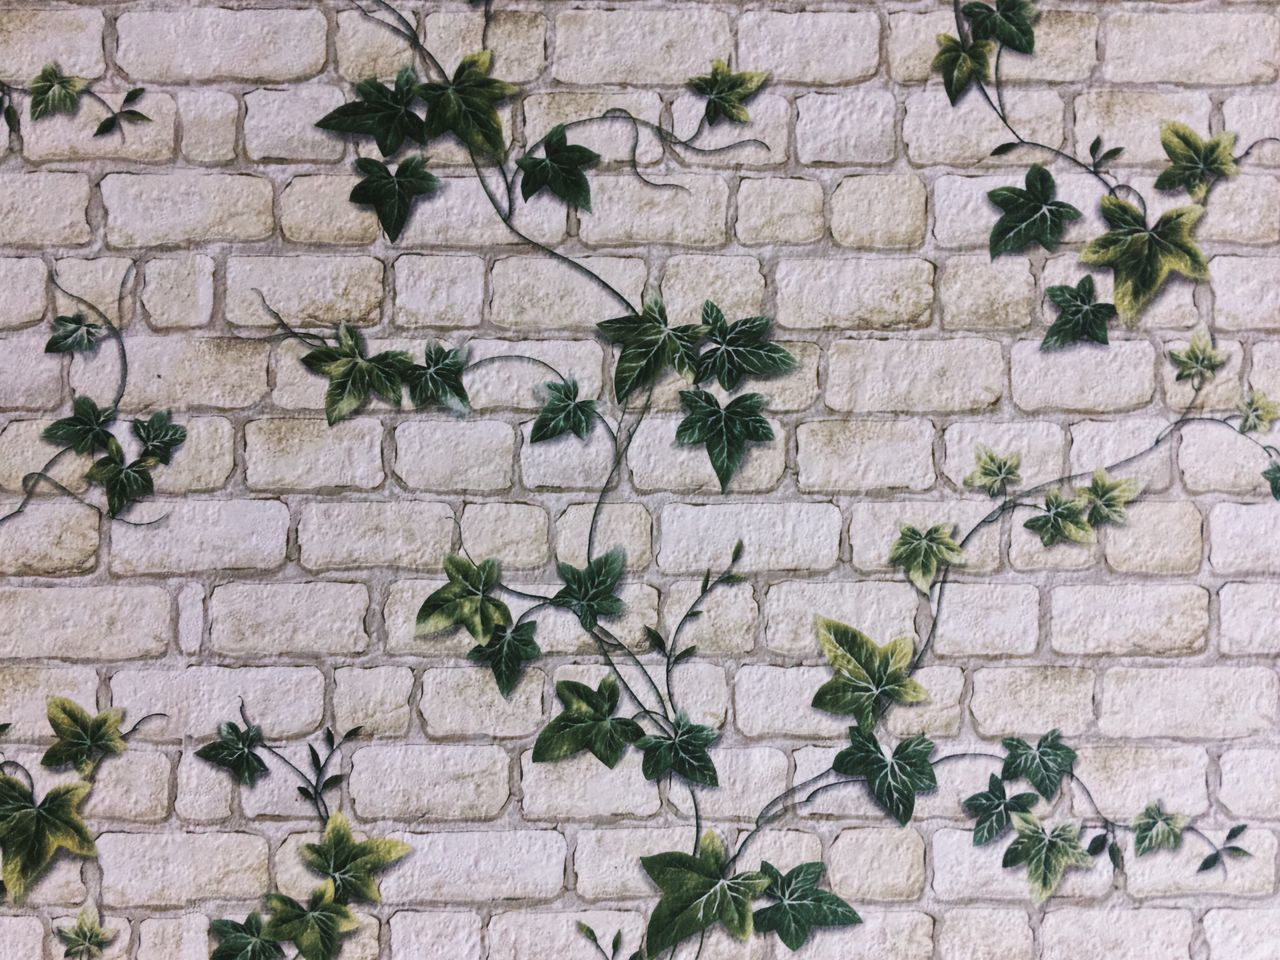 Green ivy painted on wall... Backgrounds Flower Plant Wall Wall Art Wall Painting Wallart Green Ivy Ivy Leaves Ivy Wall Fragility Freshness Petal Blooming Ornamental Painterly Painting Art Design Interior Design Wall Textures Textures Texture Designing